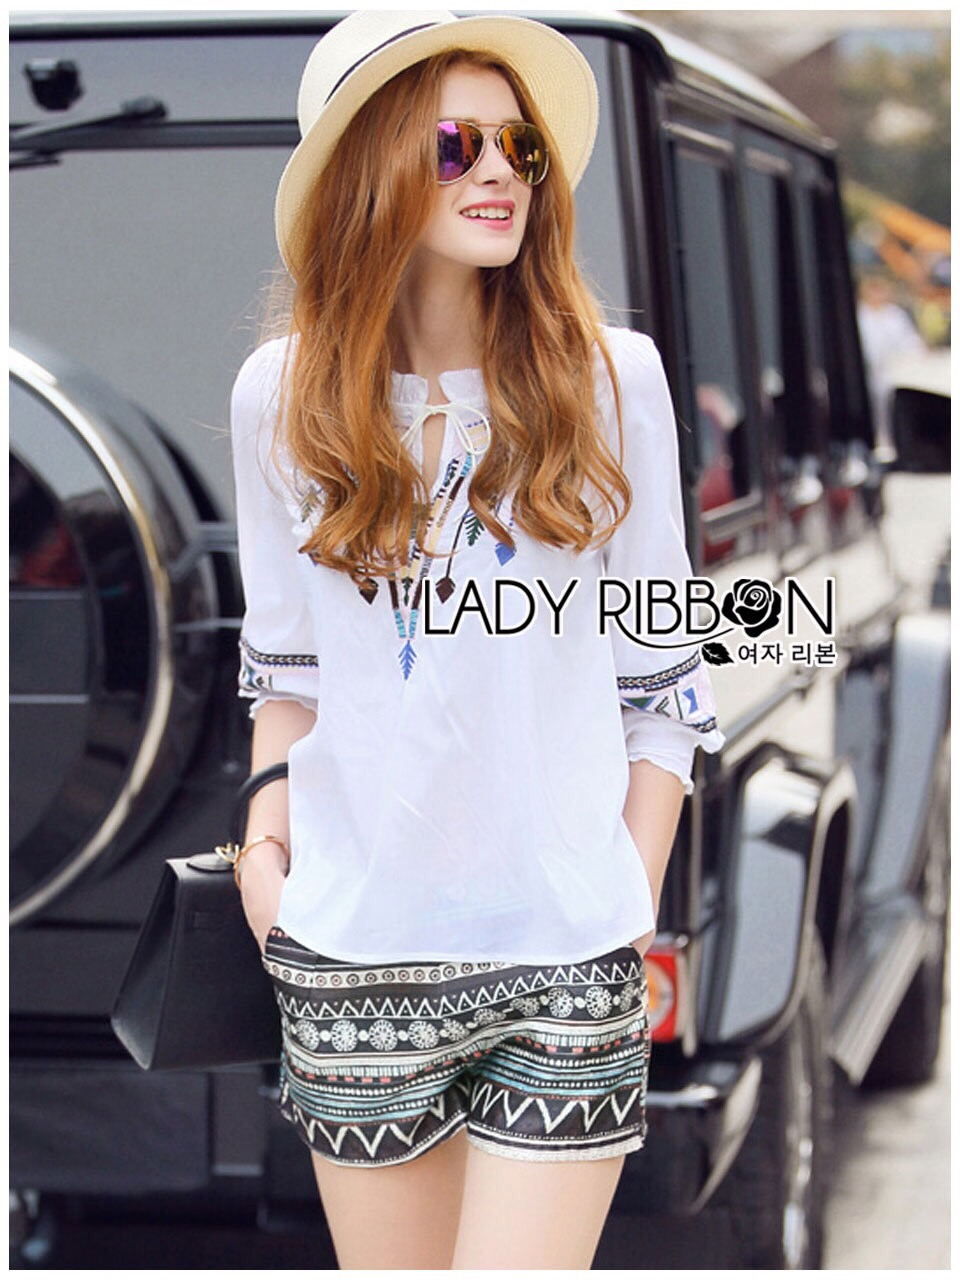 Lady Ribbon Korea LR11200616 &#x1F380 Lady Ribbon's Made &#x1F380 Lady Annie Tribal Chic Embroidered Top and Shorts Set